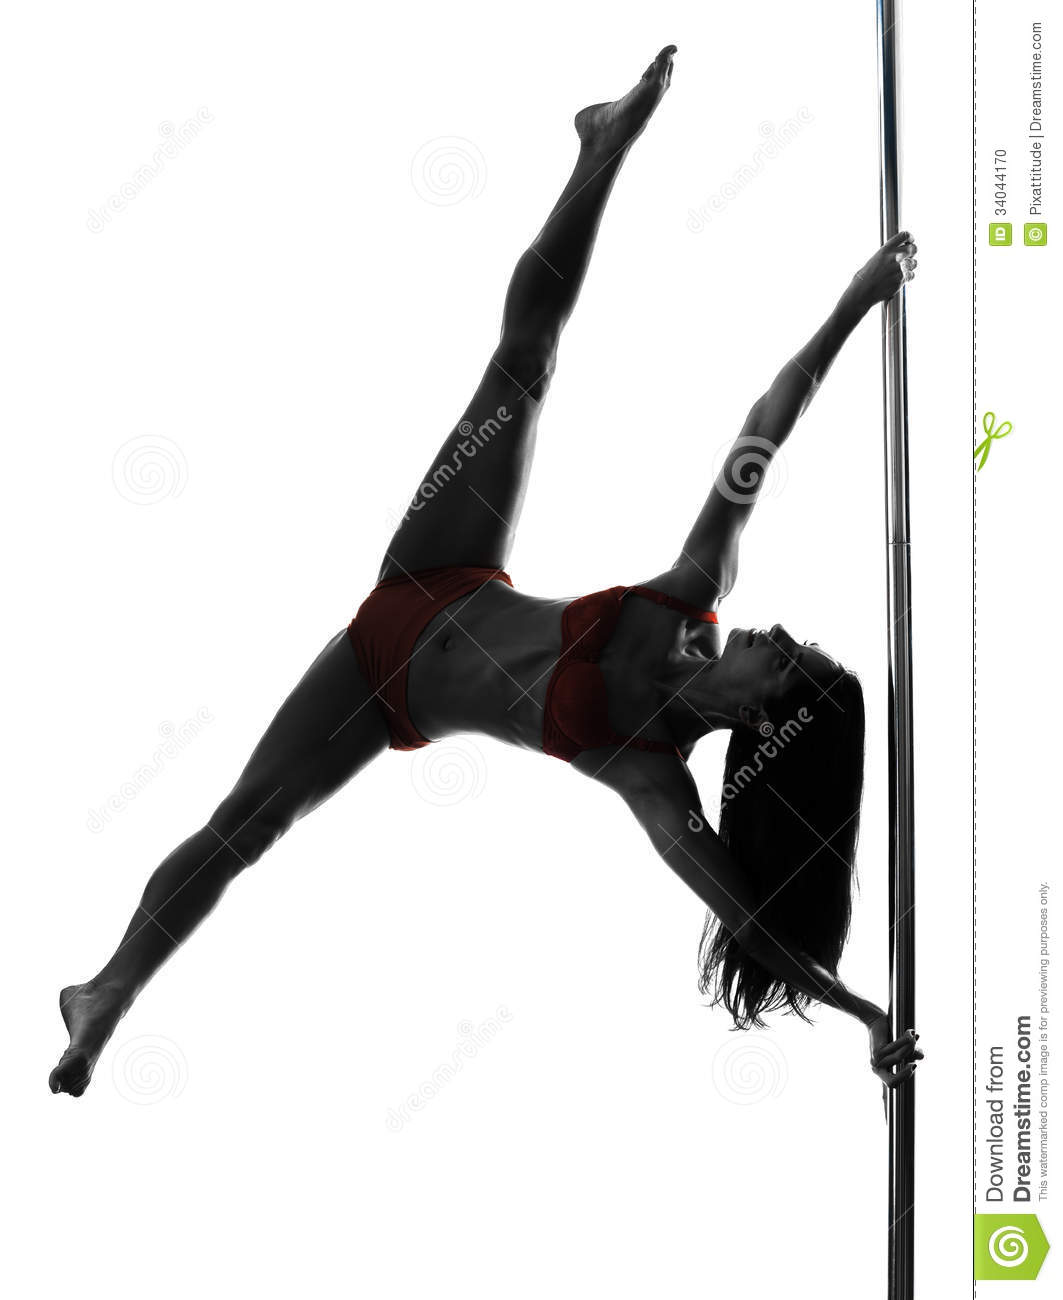 pole dancing studio business plan